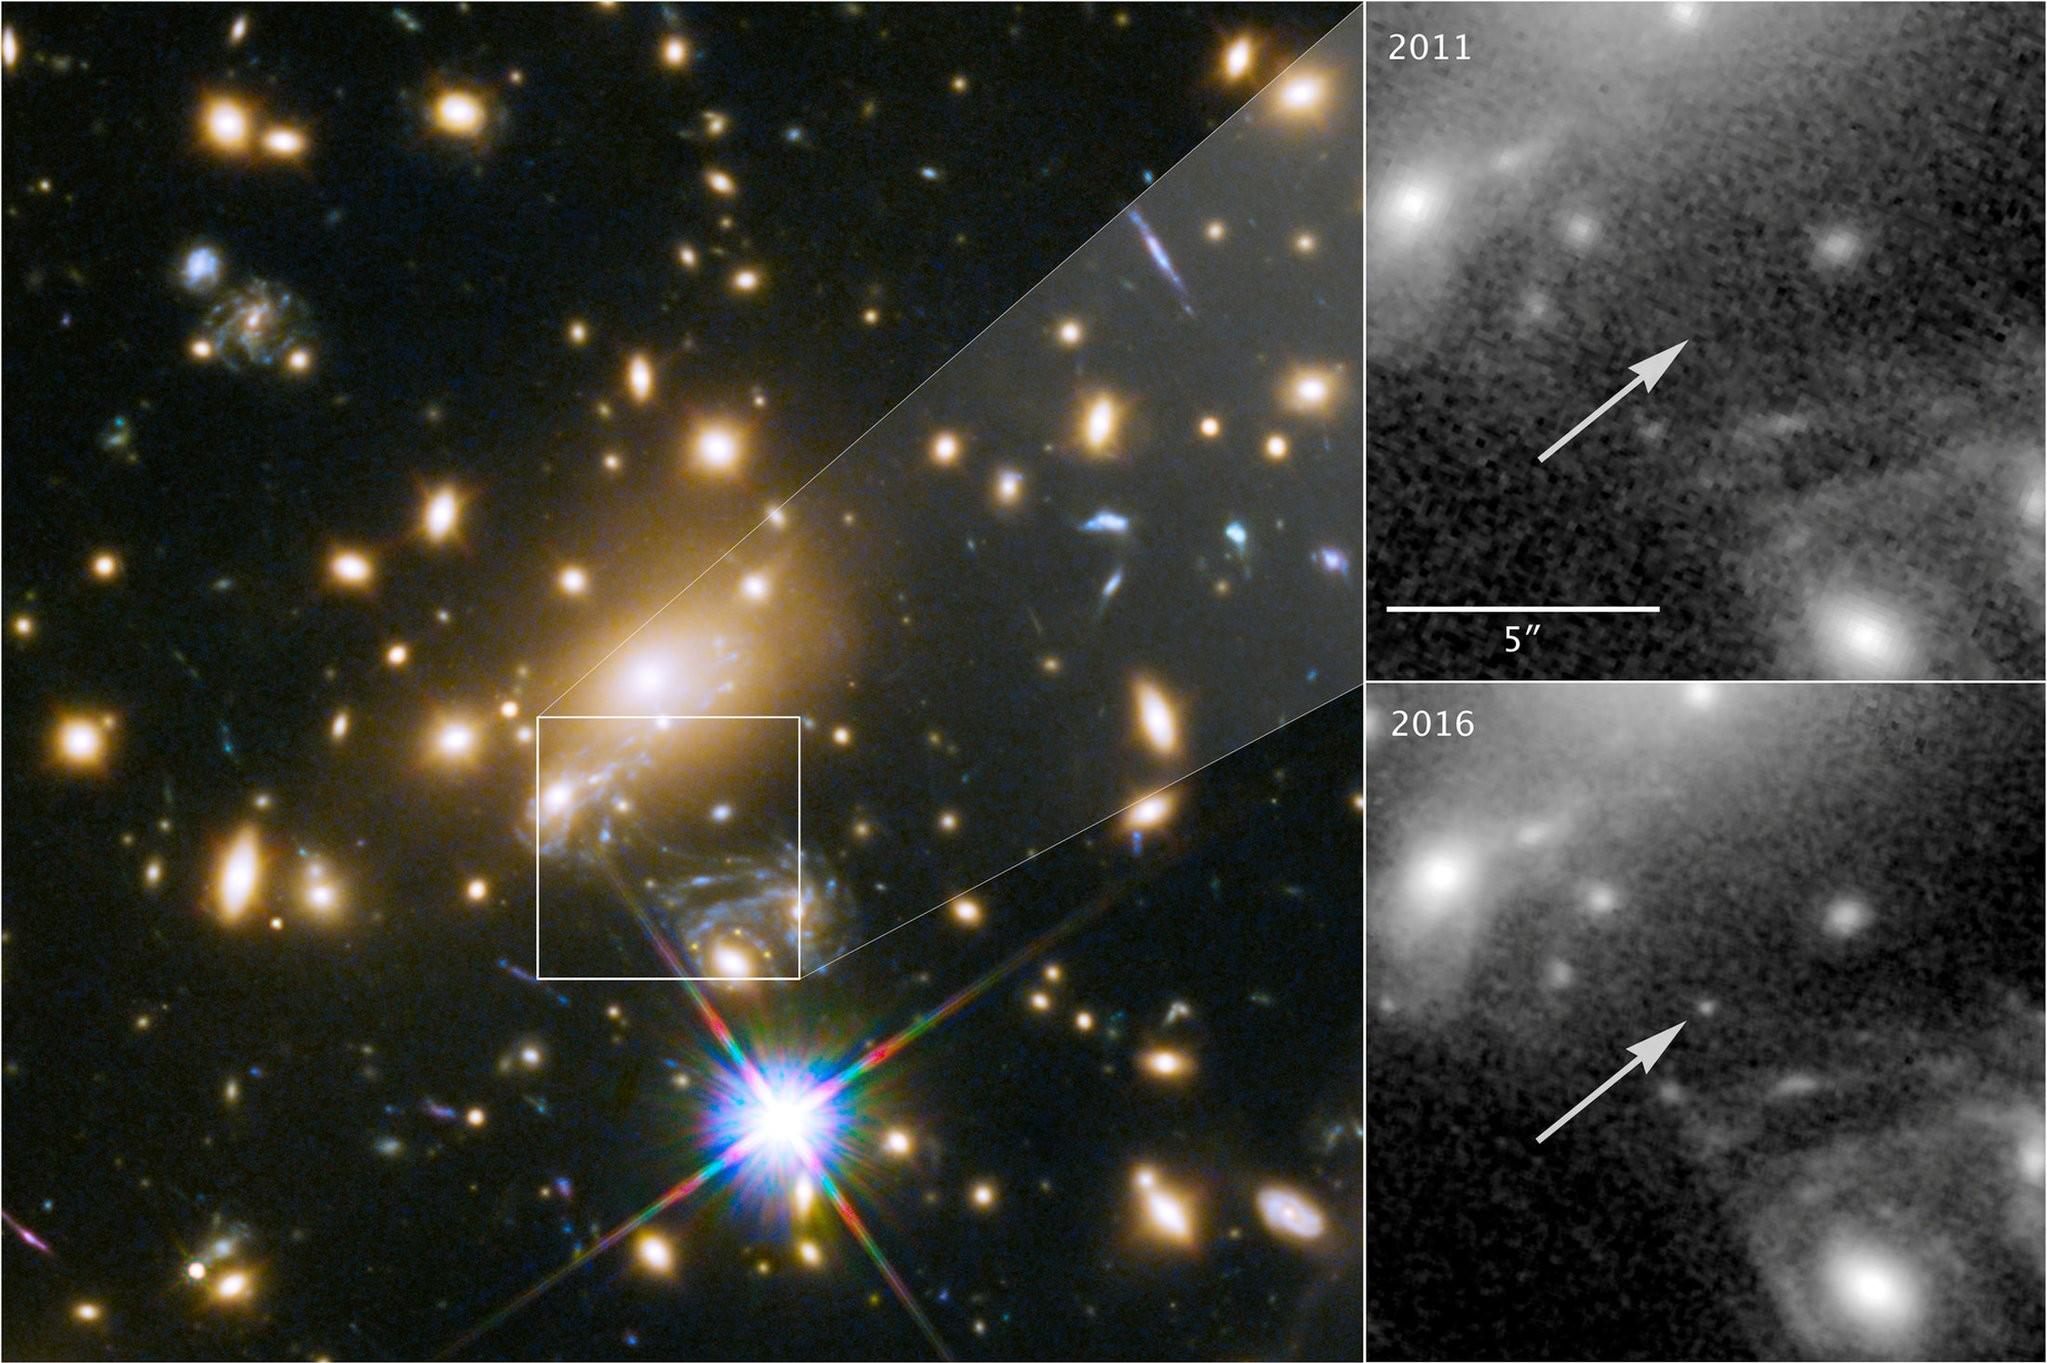 NASAu2019s Hubble Space Telescope image of a blue supergiant star the Icarus, the farthest individual star ever seen, is shown in this image released Apr. 2, 2018 (Reuters Photo)